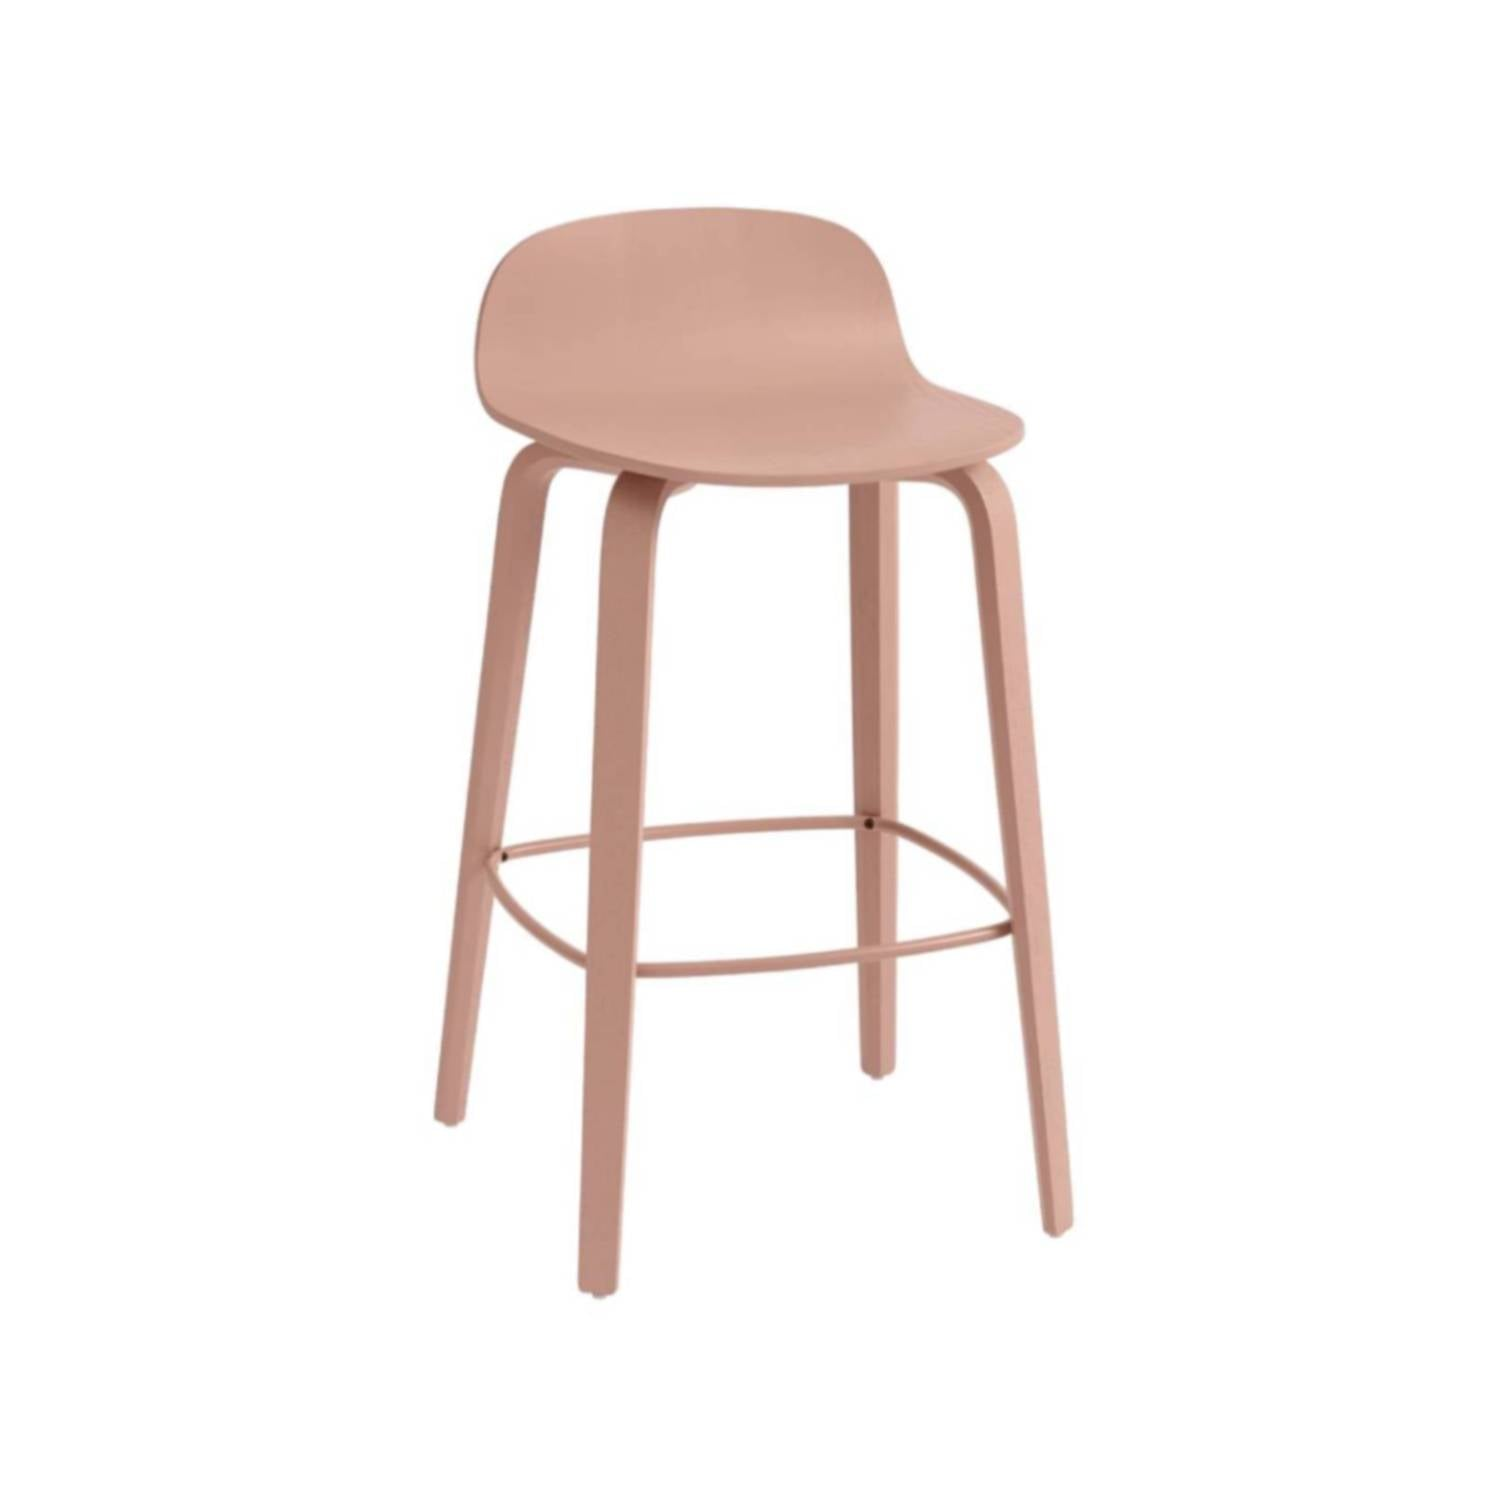 Visu Counter Stool: Tan Rose